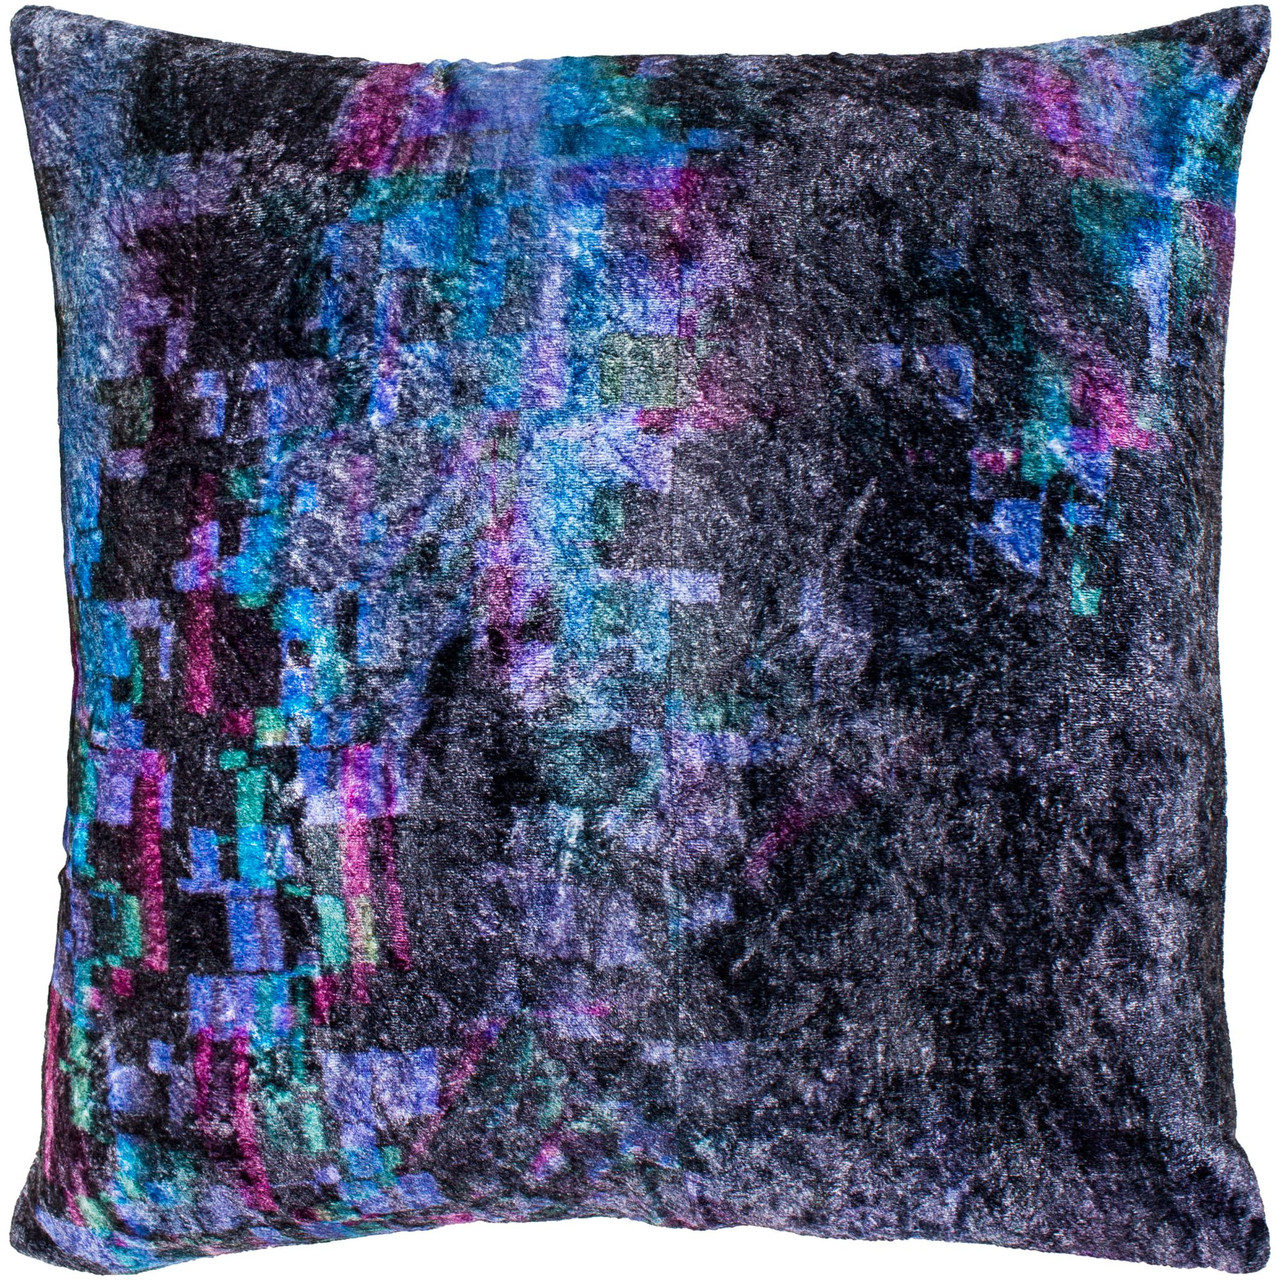 18 black and violet digitally printed square crushed velvet throw pillow cover